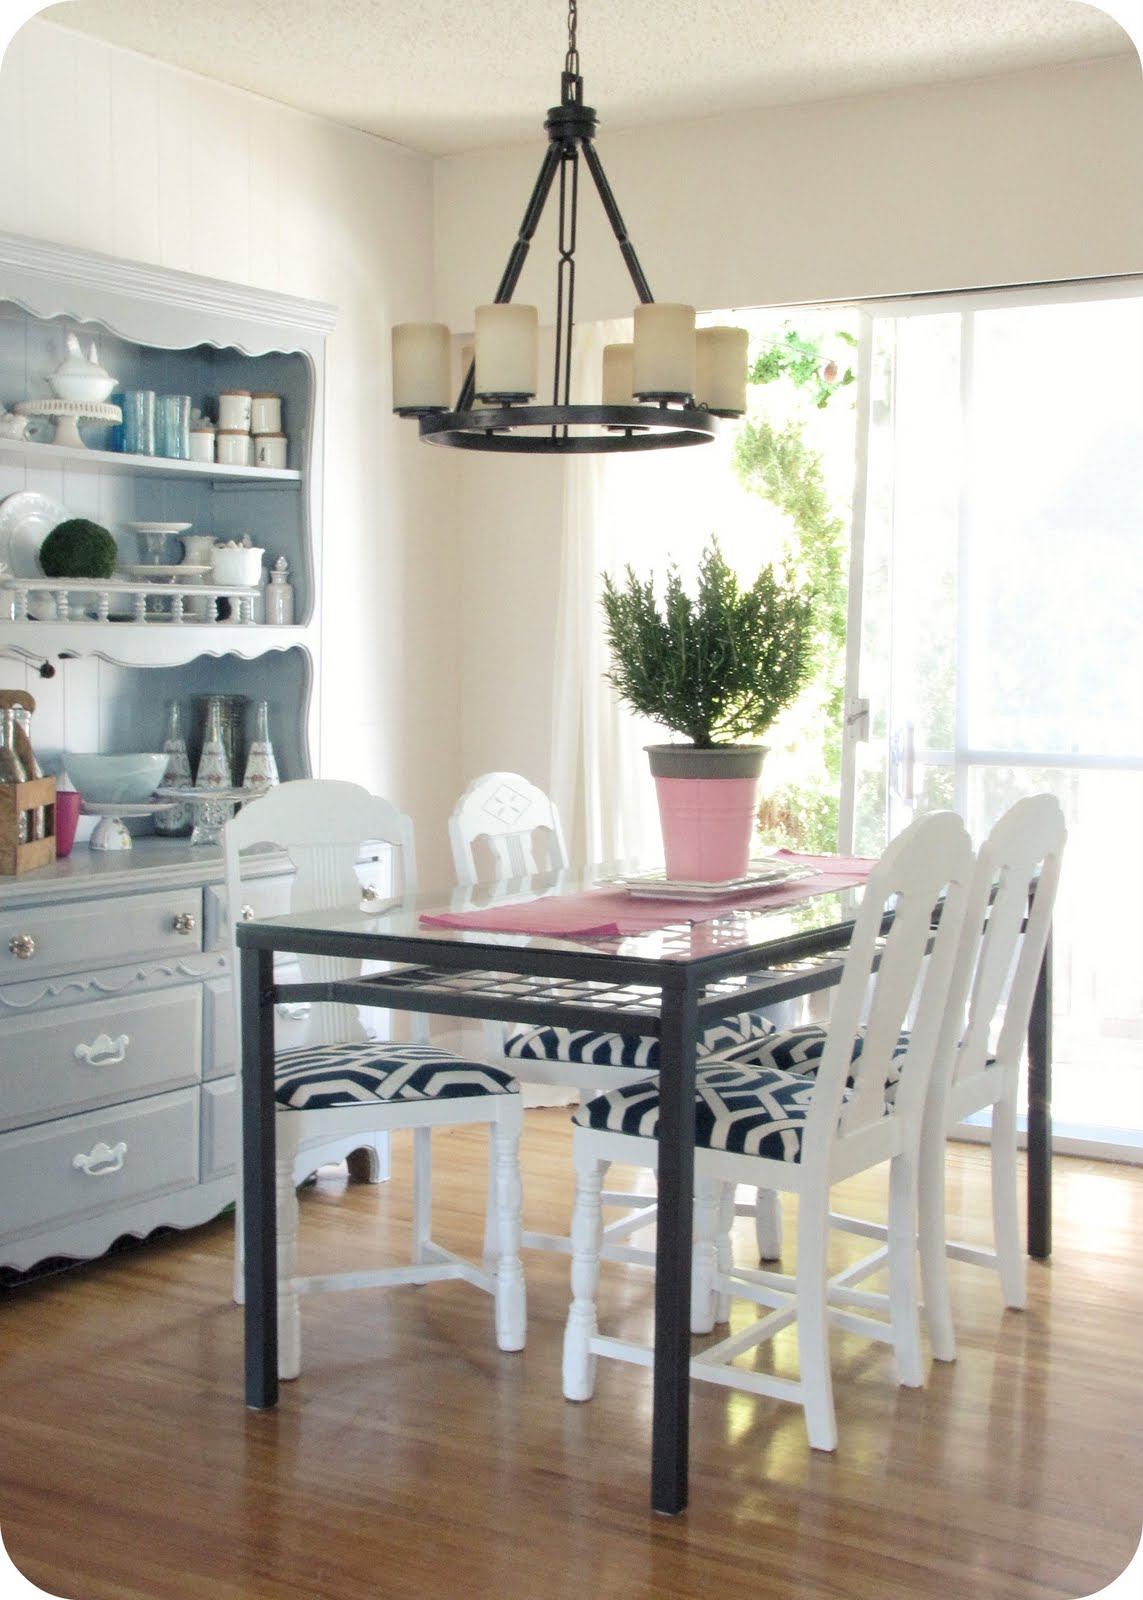 tuesday august 16 - Navy Dining Room Chairs